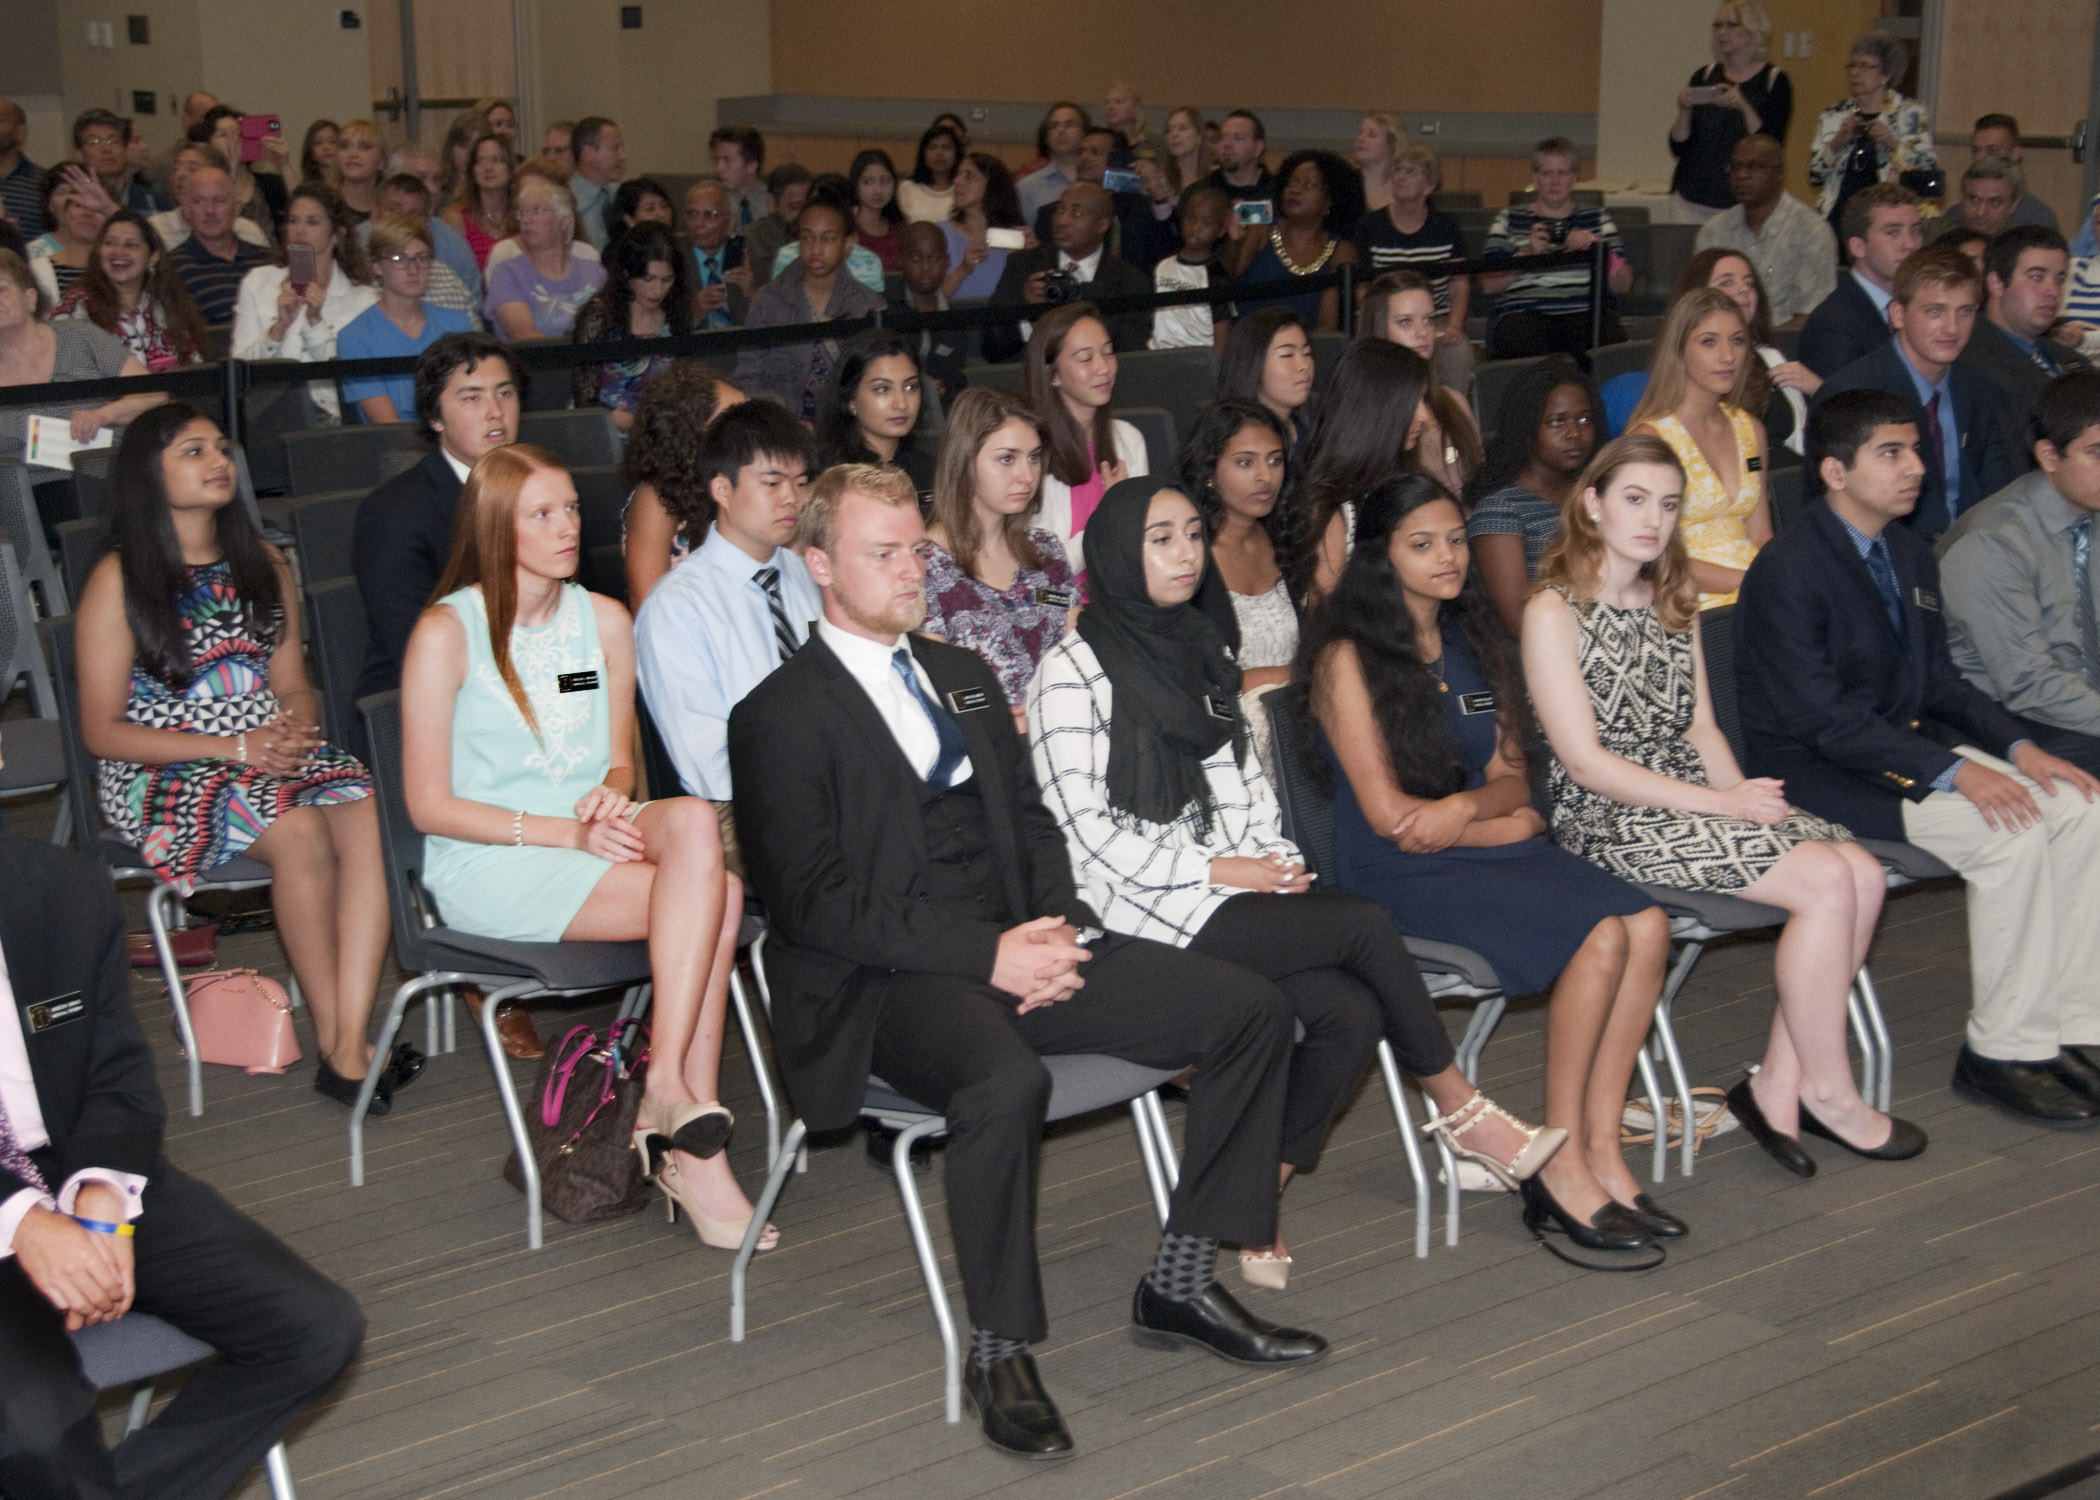 More than 100 students took part in the School of Medicine's 2016 InDOCtrination Ceremony on Aug. 19.